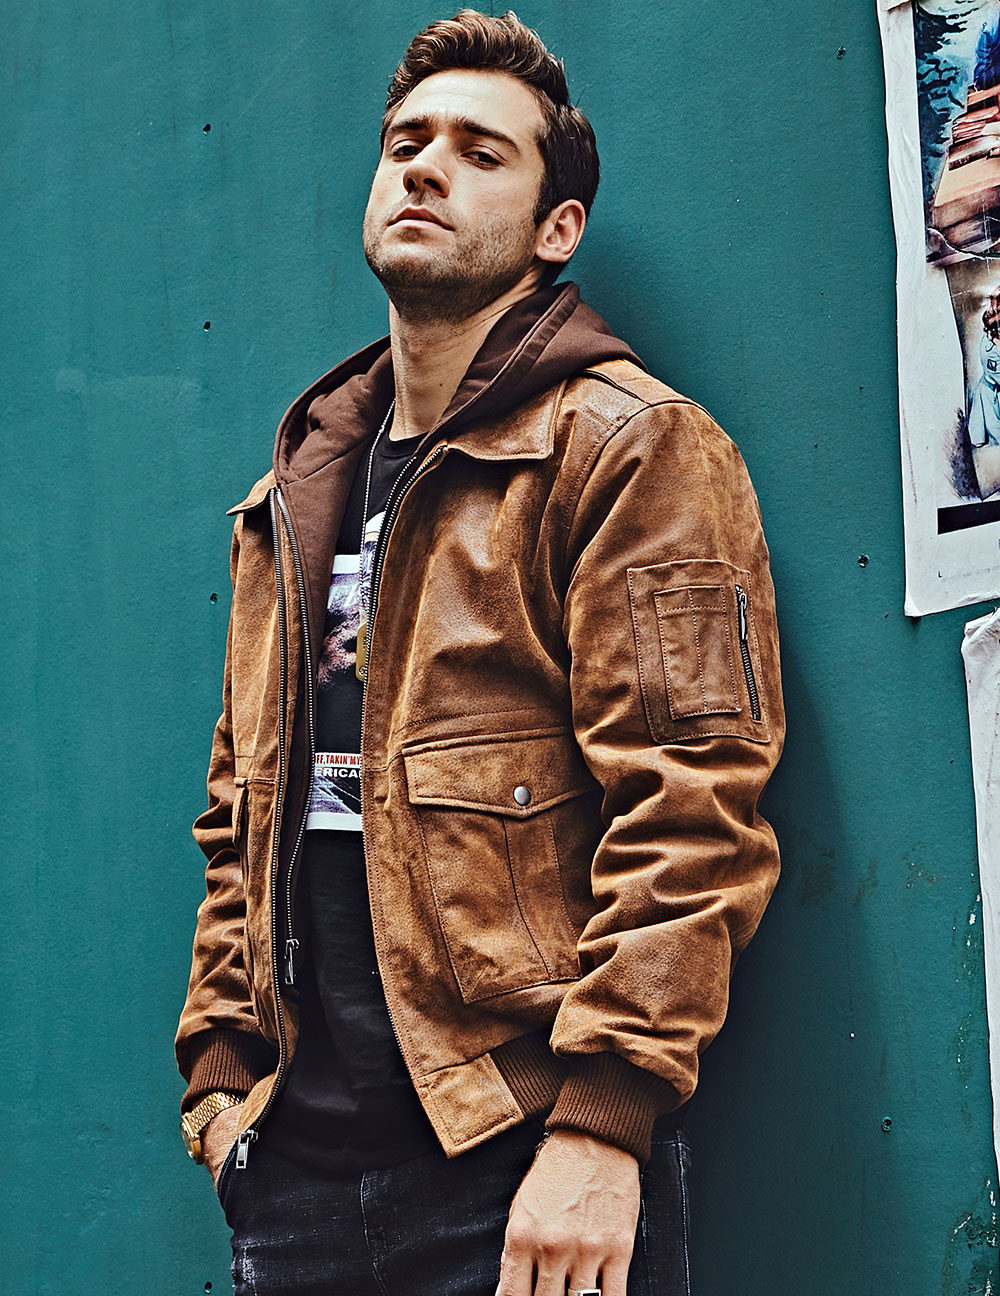 H29fdb4bd6ac4432198cf0d01abfee83ce FLAVOR New Men's Genuine Leather Bomber Jackets Removable Hood Men Air Forca Aviator winter coat Men Warm Real Leather Jacket